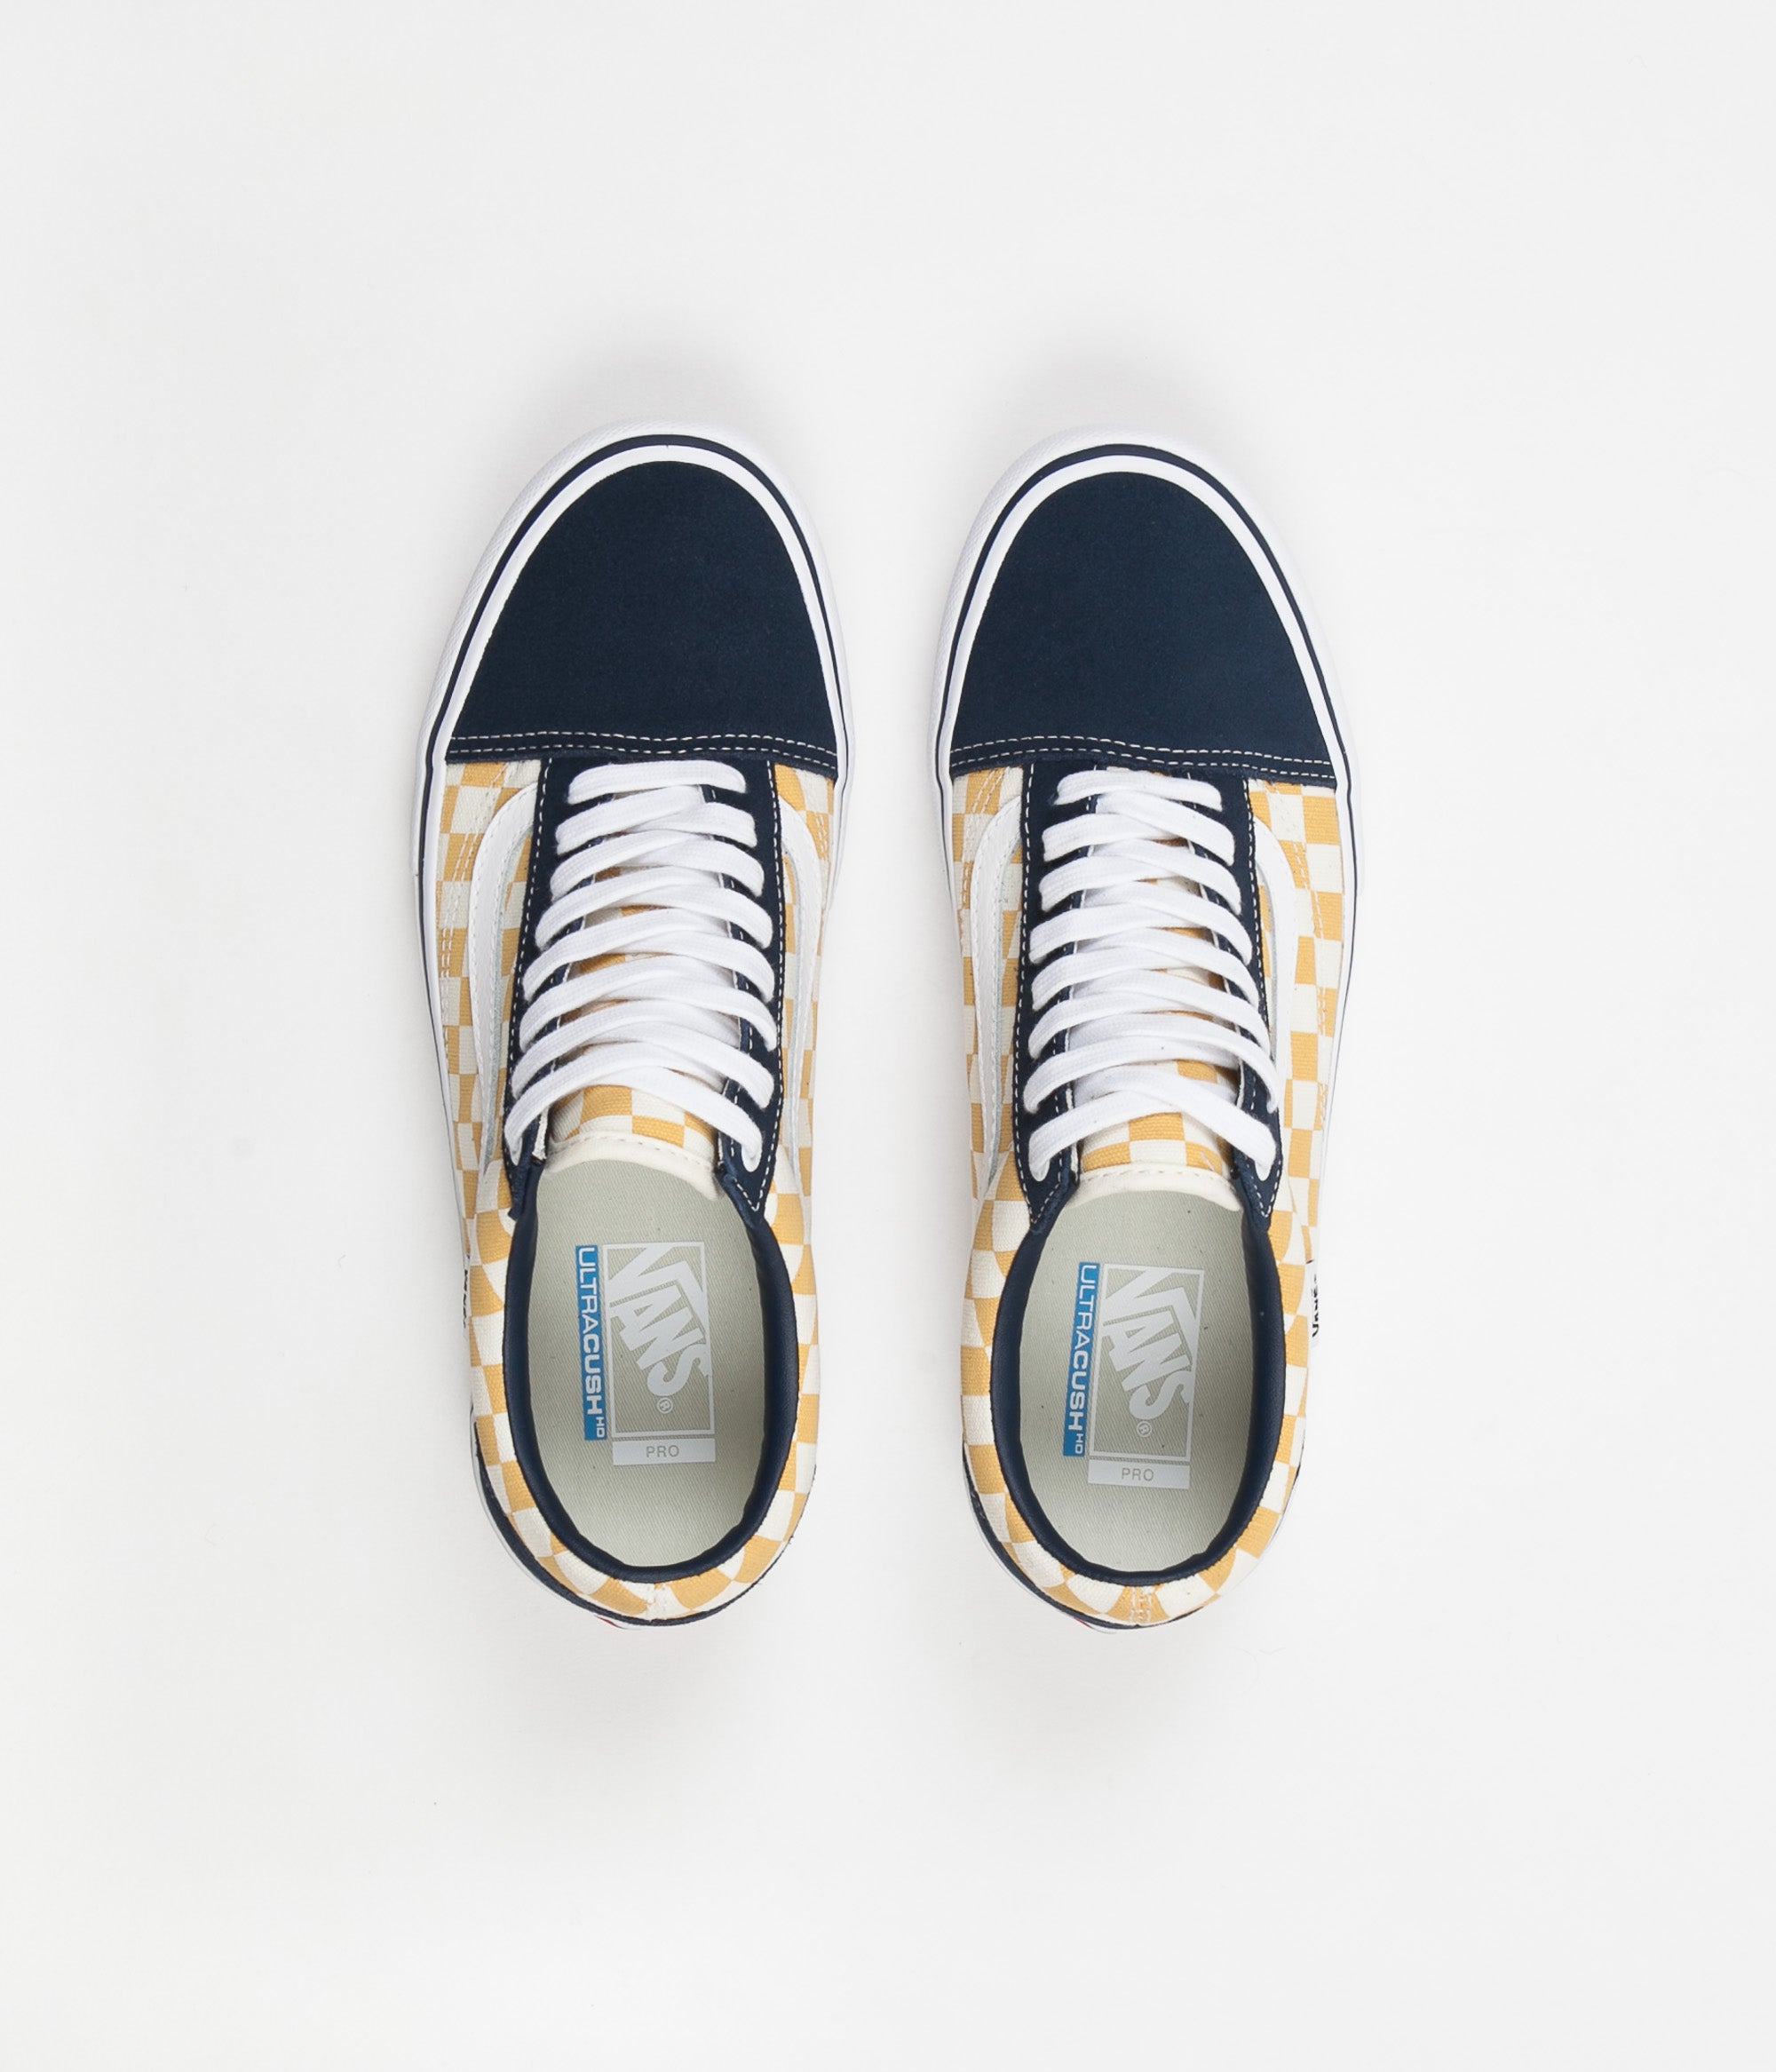 4a4e8be03f564a Vans Old Skool Pro Checkerboard Shoes - Dress Blues   Ochre ...